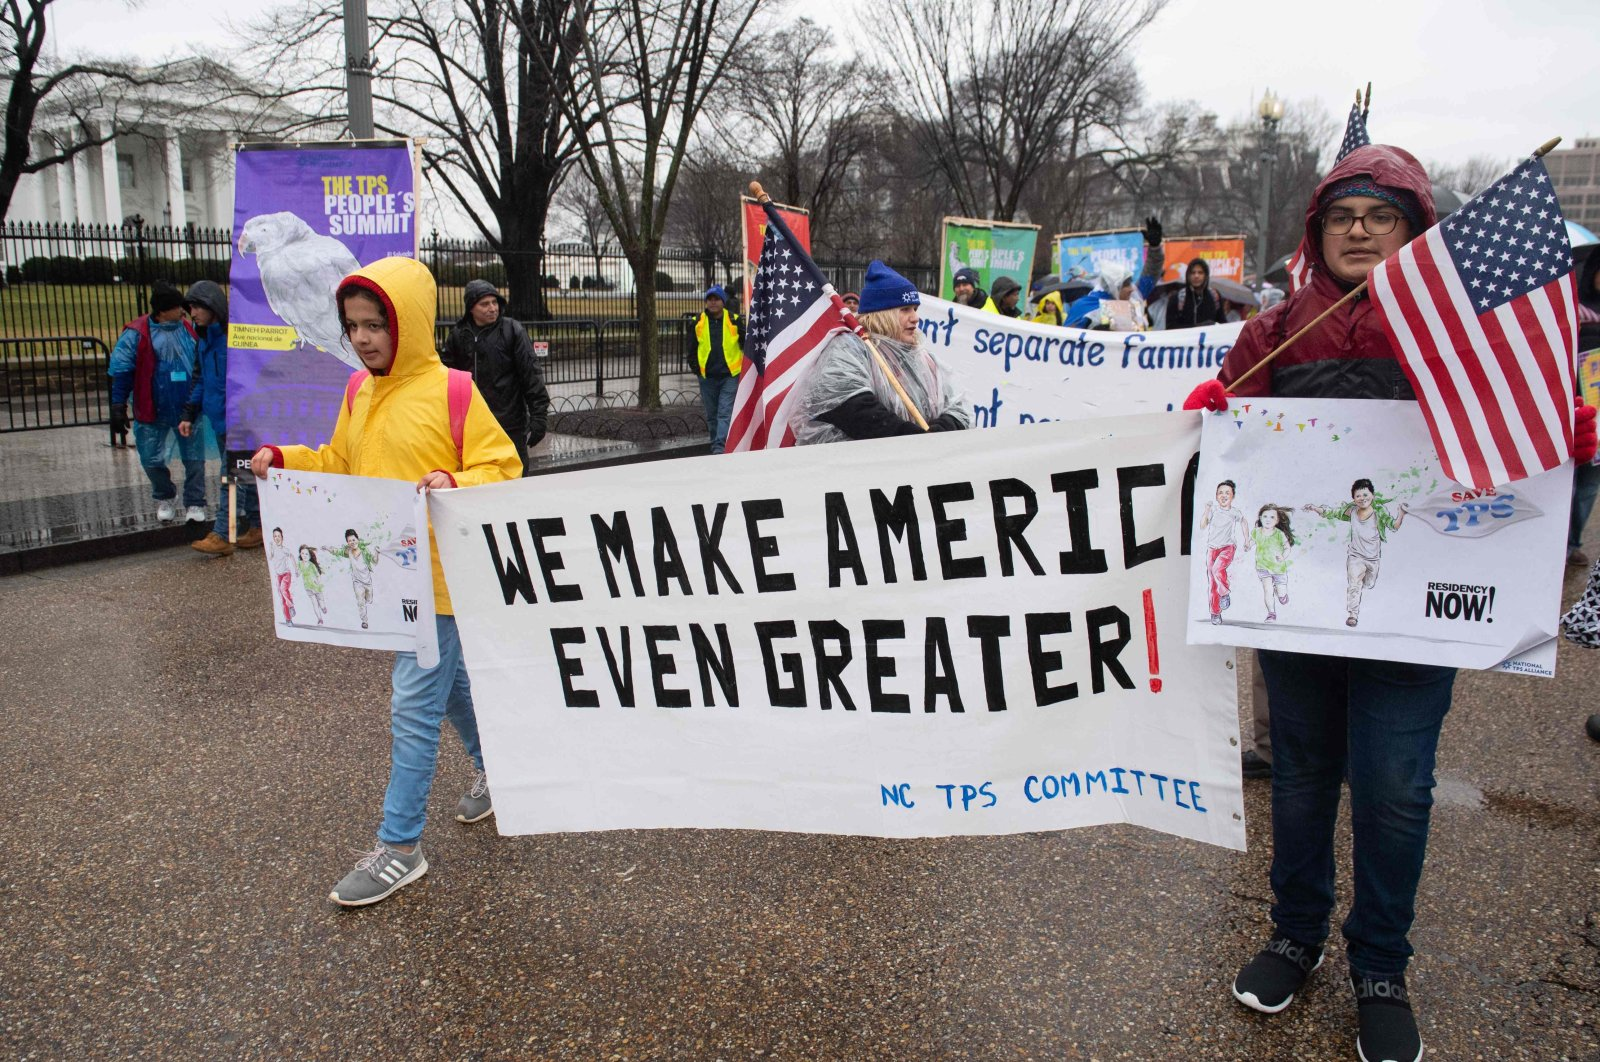 Demonstrators participate in the March For TPS (Temporary Protected Status) Justice as they rally in support of Deferred Action for Childhood Arrivals (DACA) recipients and TPS holders during a protest for permanent residency outside the White House in Washington, D.C., U.S., Feb. 12, 2019. (AFP Photo)